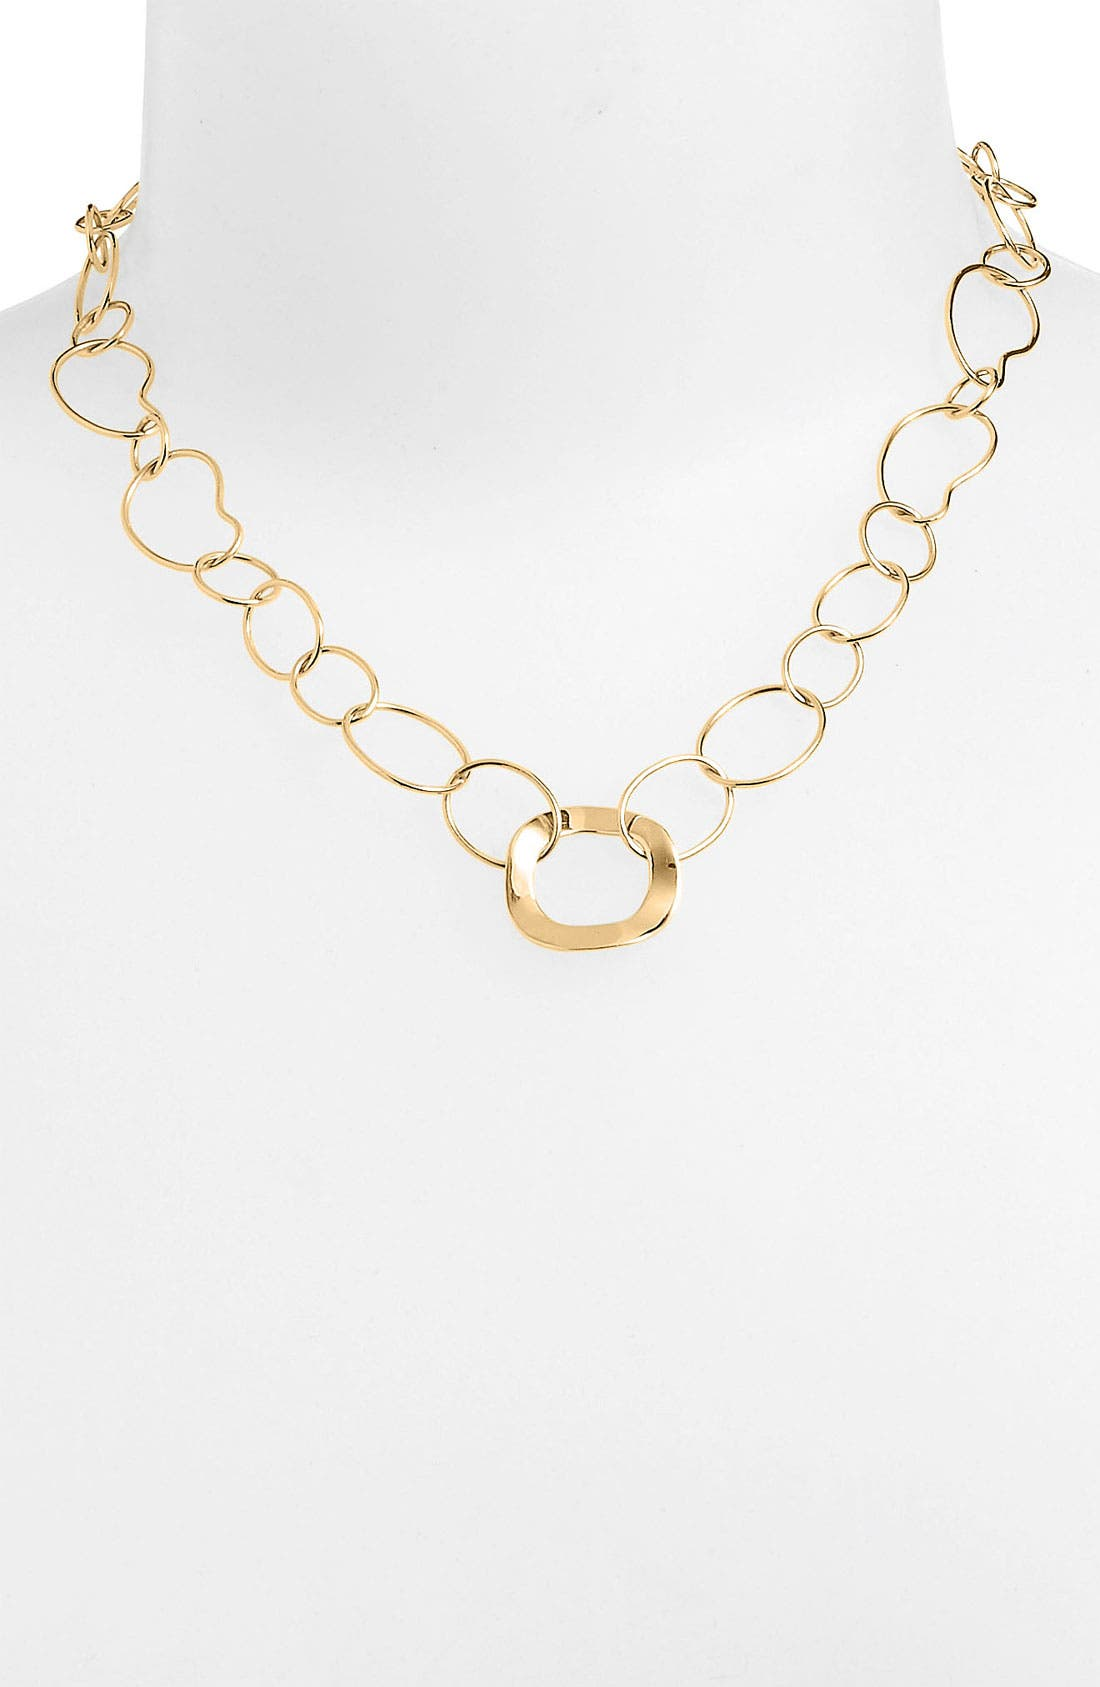 Alternate Image 1 Selected - Ippolita 'Plain' 18k Gold Chain Necklace